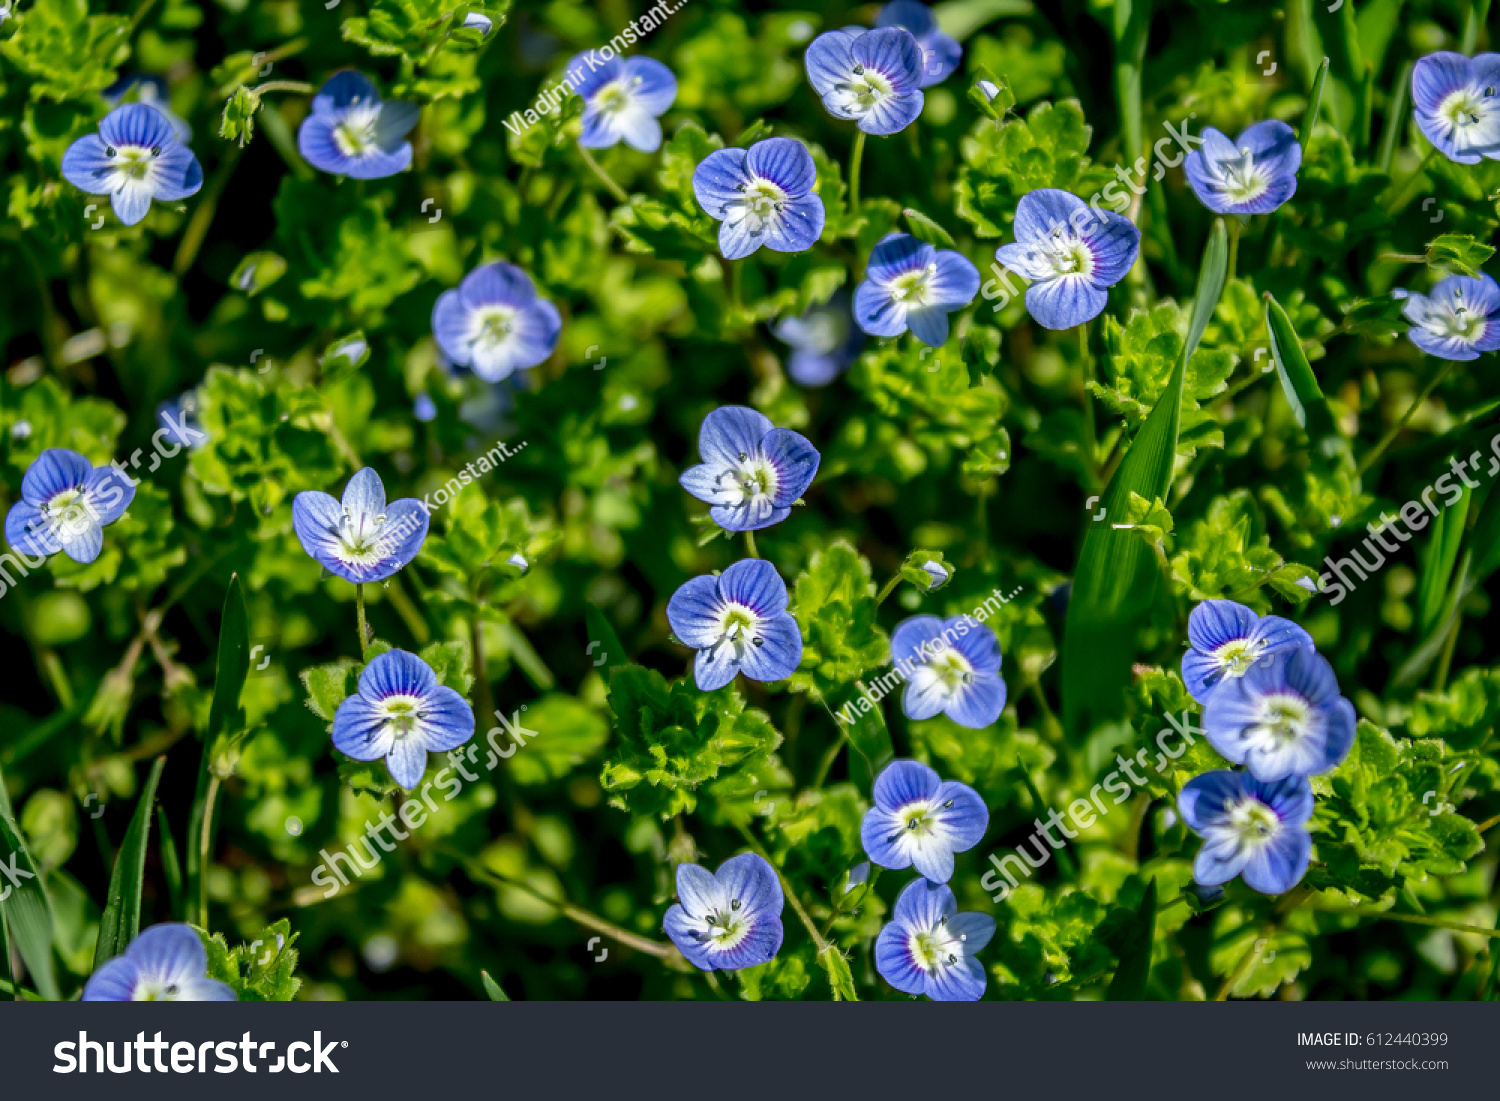 Small Blue Flowers Green Grass Stock Photo Edit Now 612440399